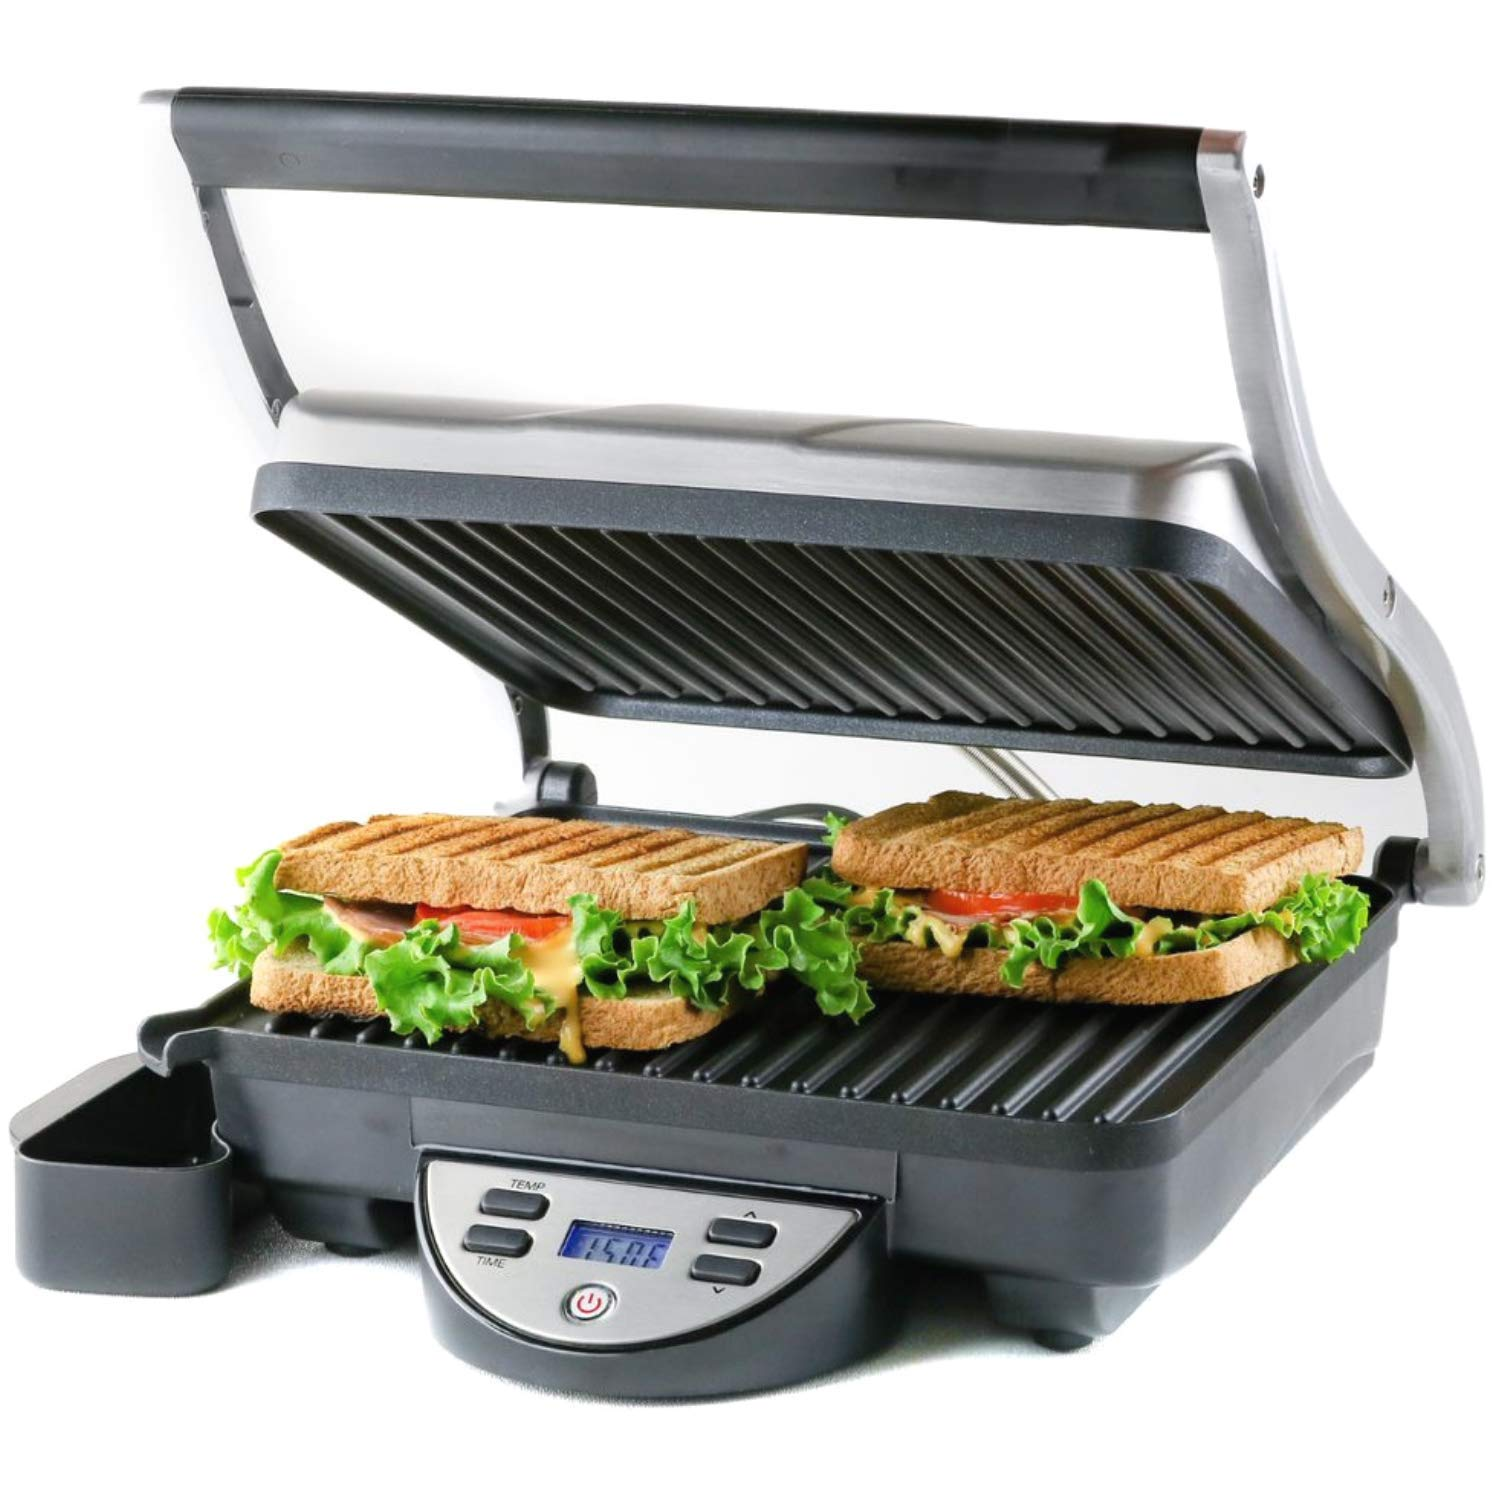 Ovente GP1000BR Electric Panini, 10.2 × 9'' Non-Stick Plates, 1500W, Digital LCD Display, Timer & Auto Shut-Off, Free Grill, Brushed Silver by Ovente